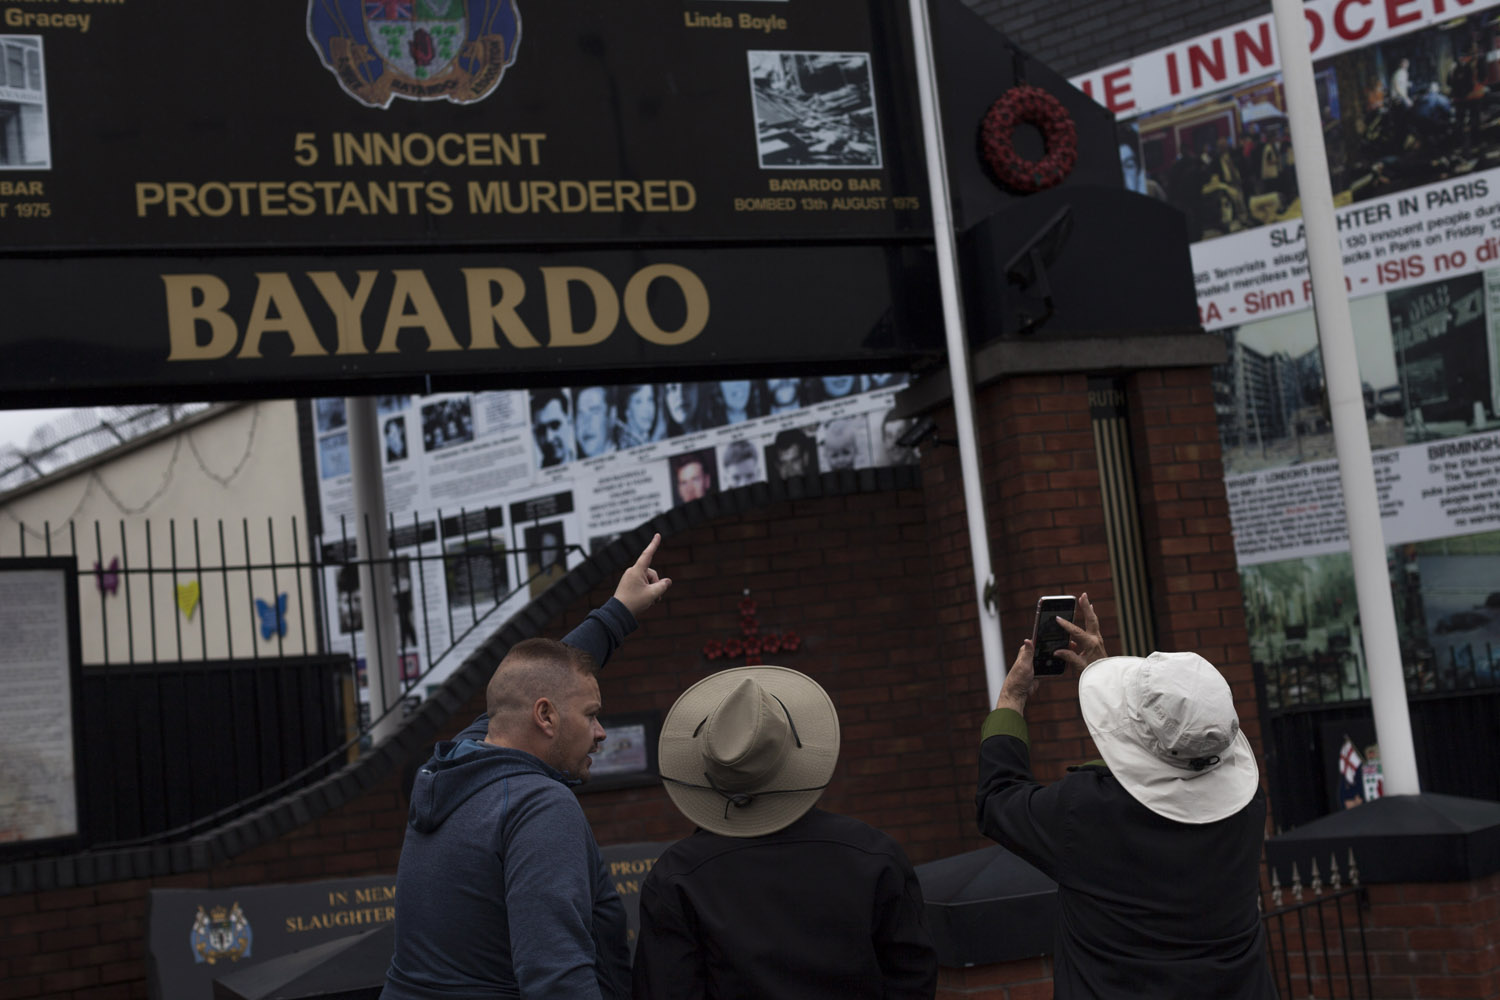 A tourist guide showing the memorial for the victims of the Bayardo bombing, in which a pub at the hearth of the Protestant area of Shankill Road was blown up by the IRA (Irish Republican Army, the main Catholic paramilitary organization) a few minutes after a gathering of loyalist paramilitaries had taken place on its first floor. The visible traces of the conflict such as political  murals or the Peace Lines have become tourist attractions of sorts, with organized tours and specialized guides, who often are former paramilitaries themselves.